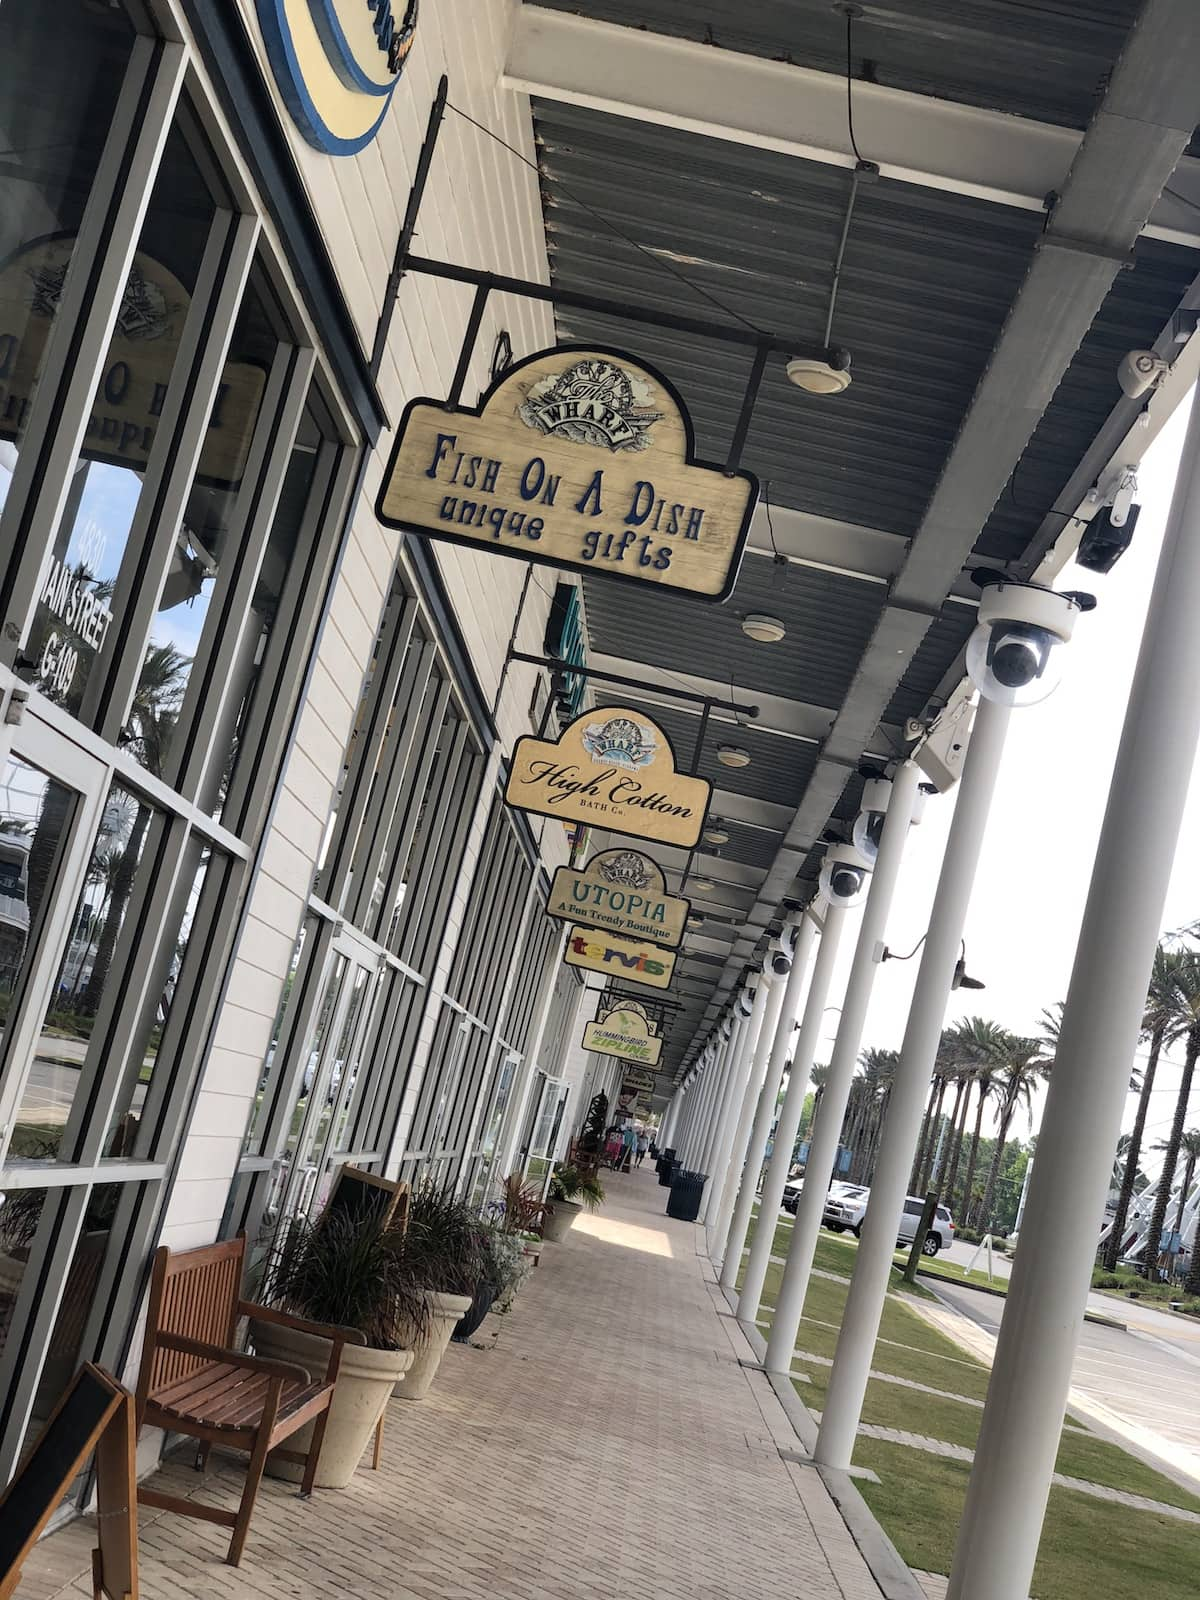 Gulf Shores, Alabama for a Girlfriend Getaway: 5 Reasons to Go - The Wharf